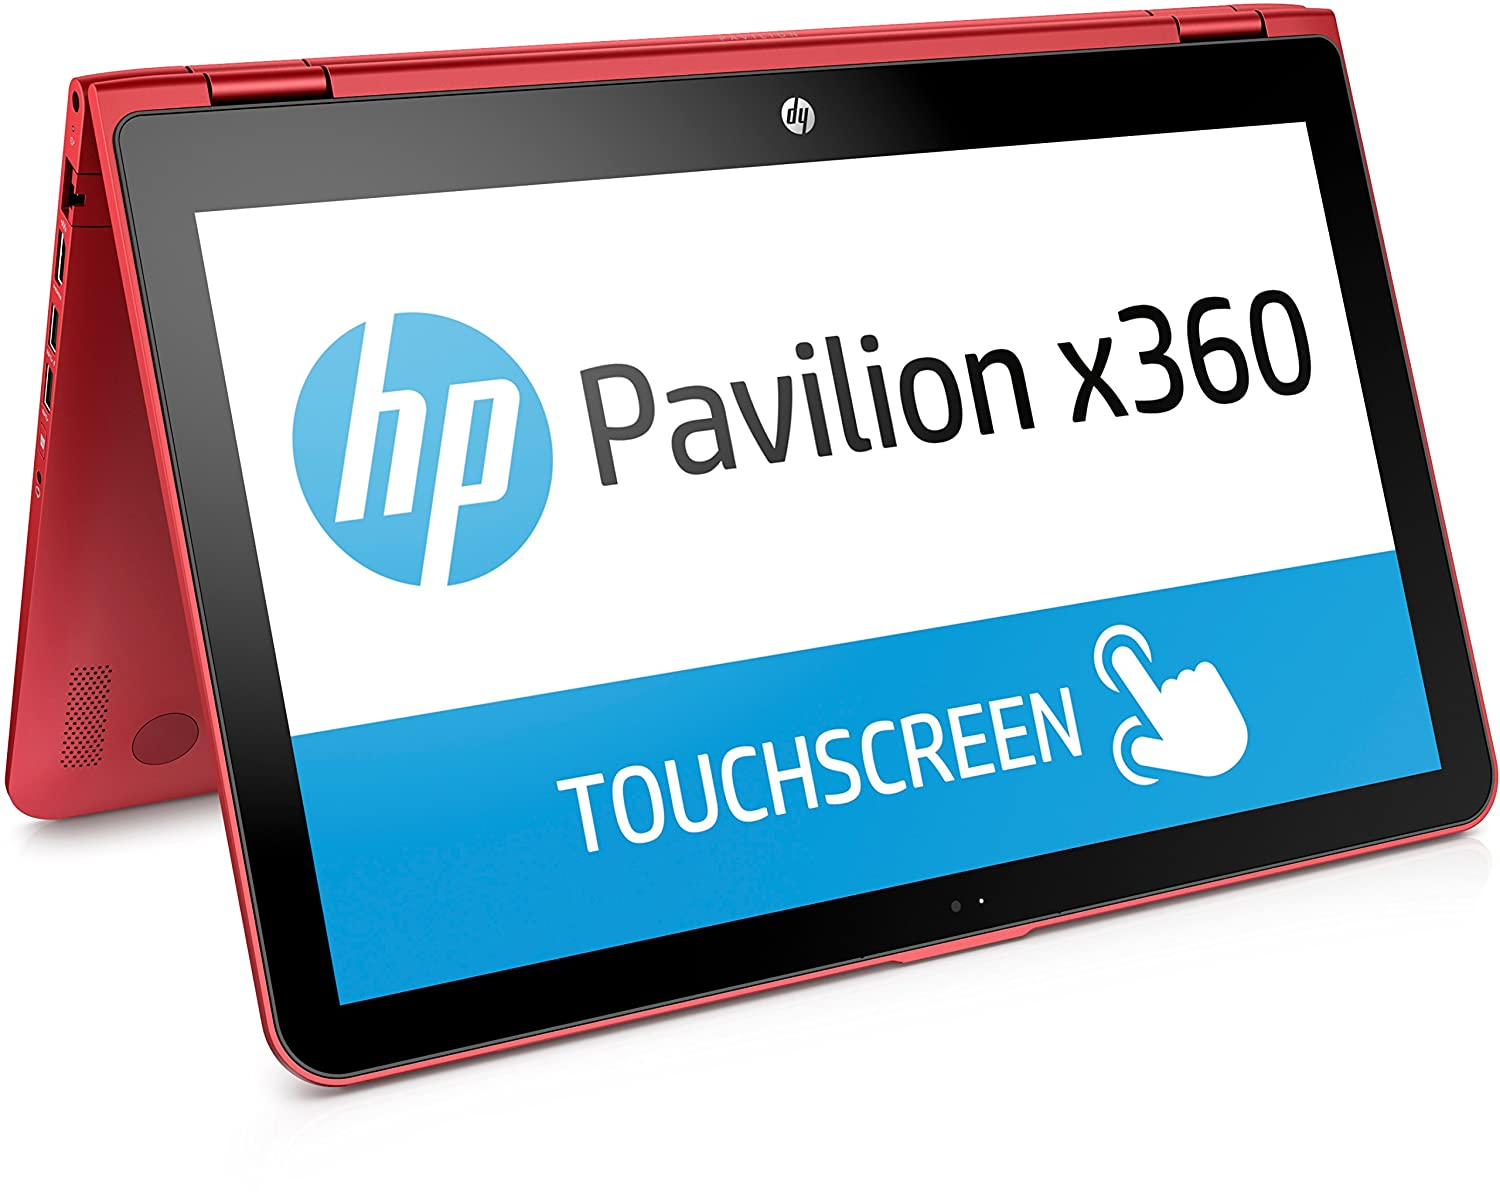 HP Pavilion x360 15-bk103ng 15 Zoll Notebook im Test